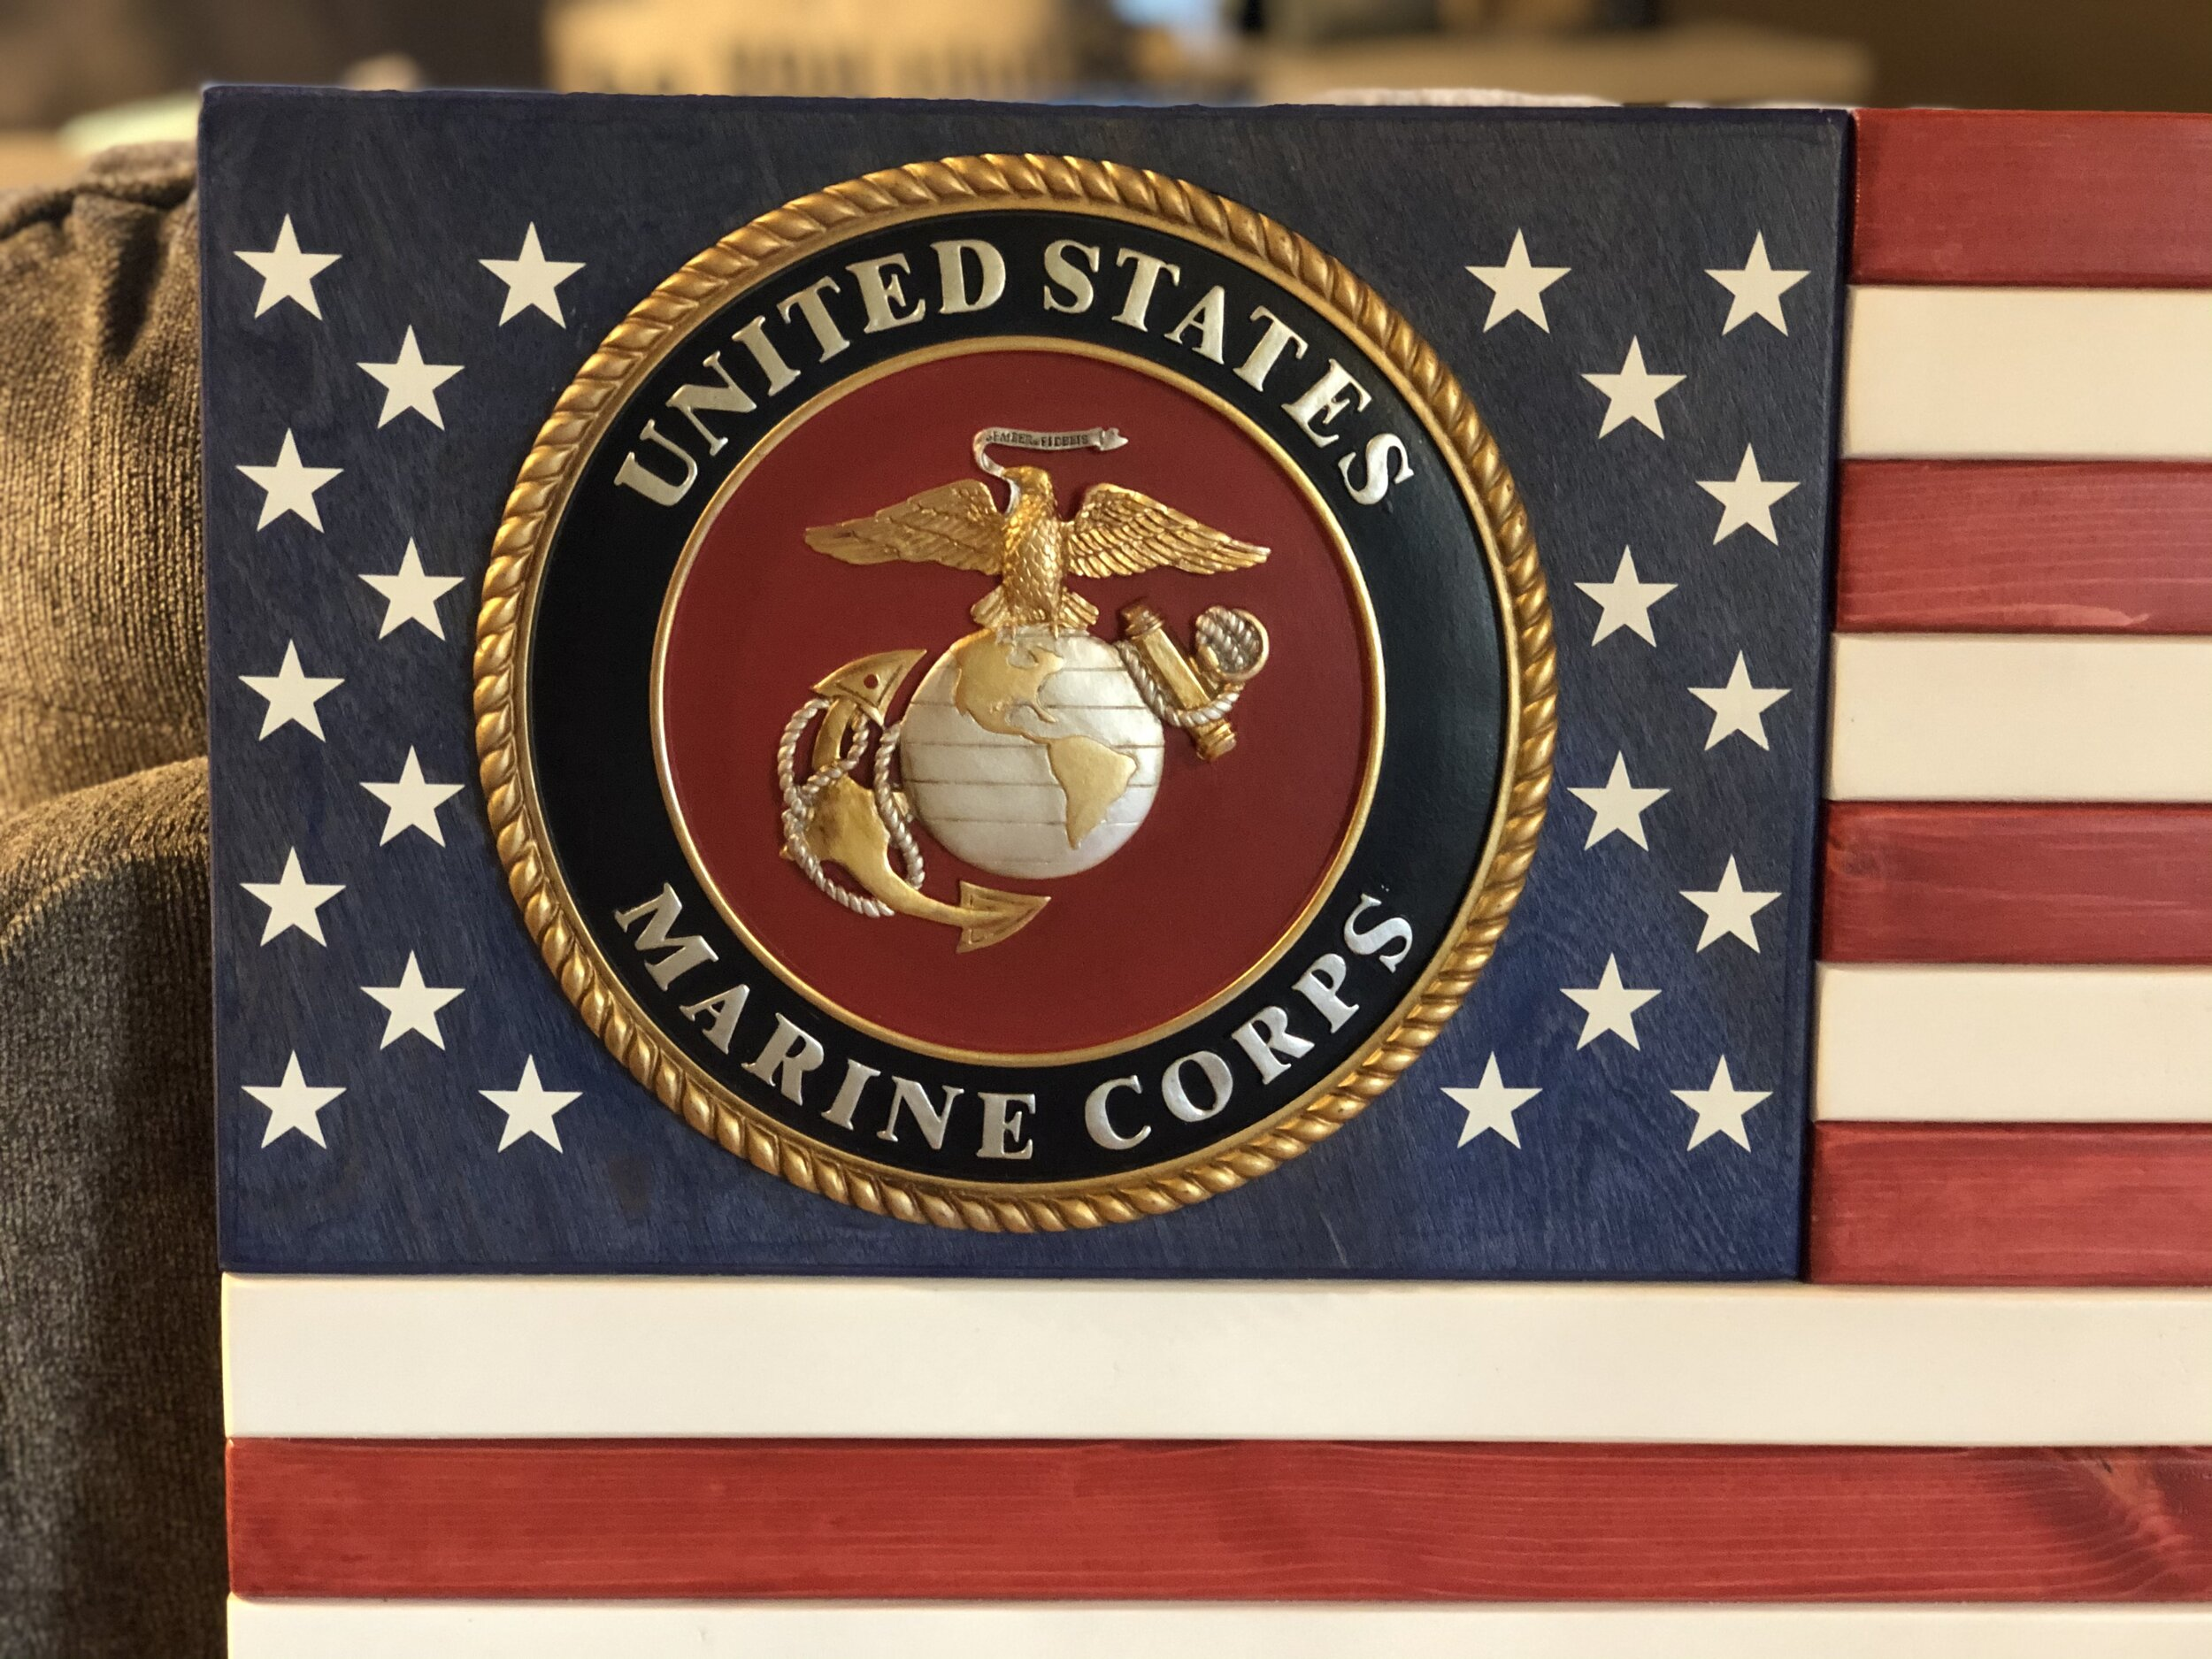 United Staes Marine Corps Flag out of wood.jpeg